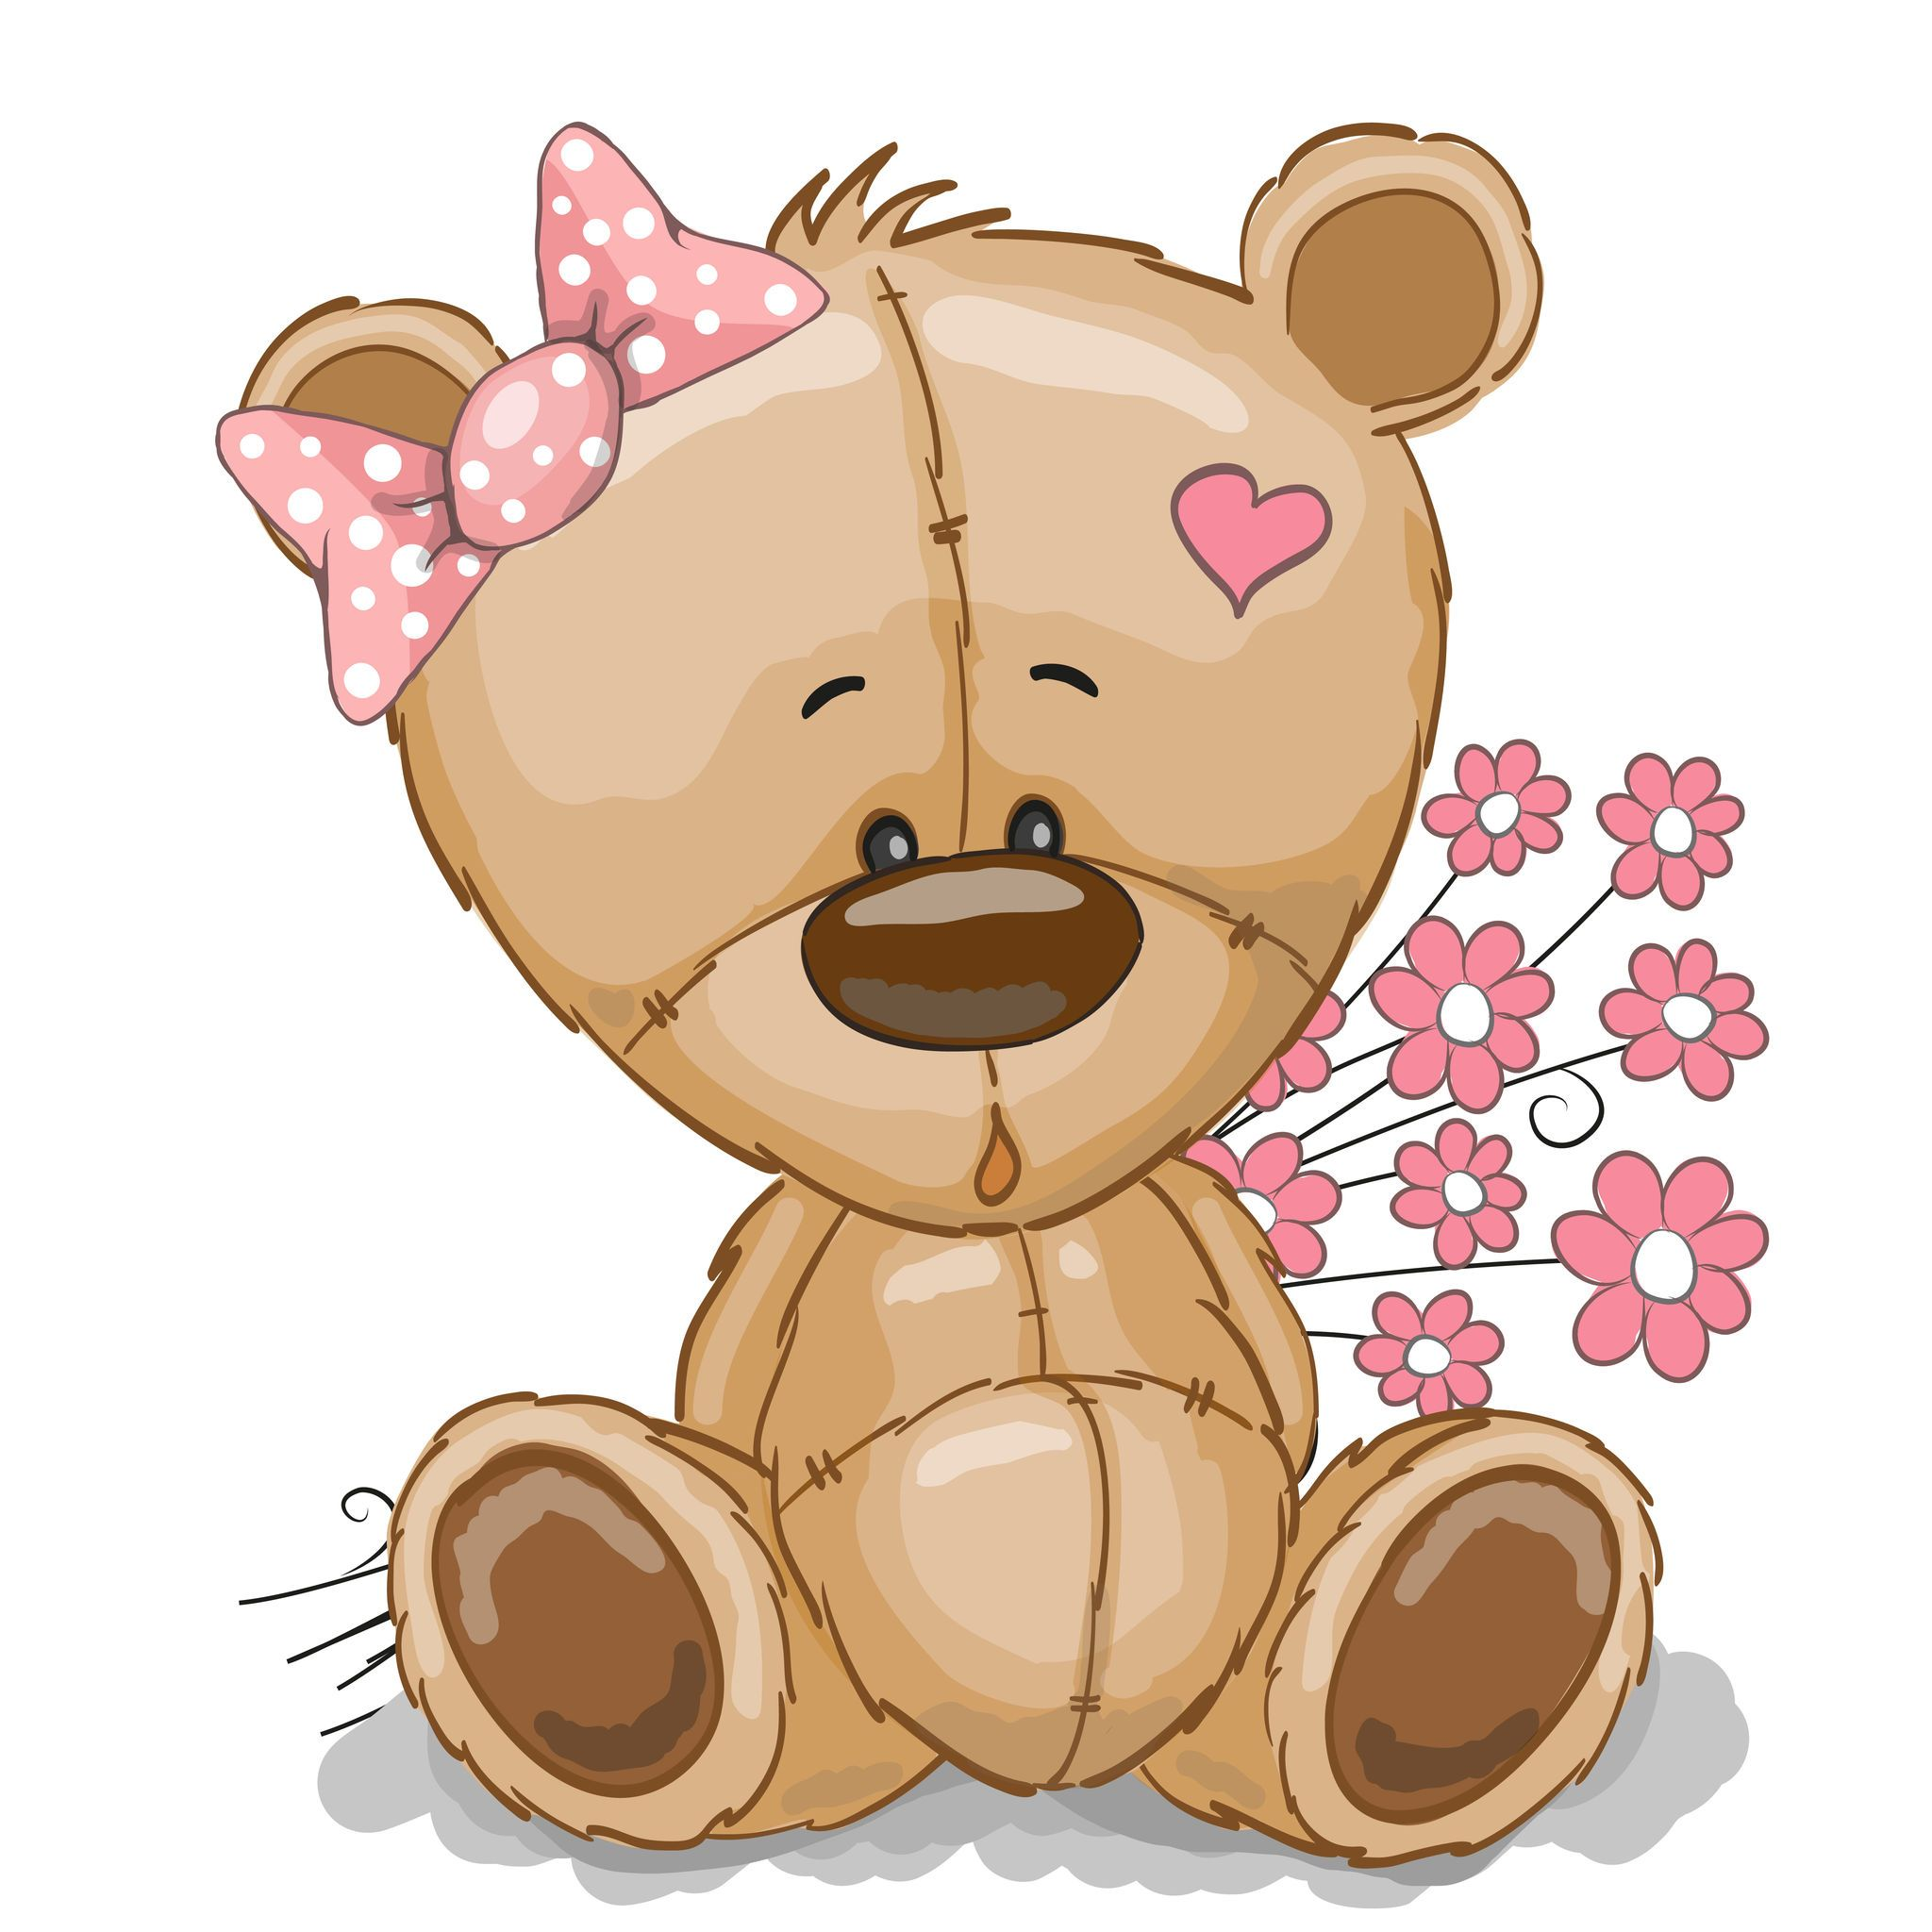 Baby eva android clipart vector freeuse library Teddy #bear #best #friend #love #childhood #wallpapers #android ... vector freeuse library